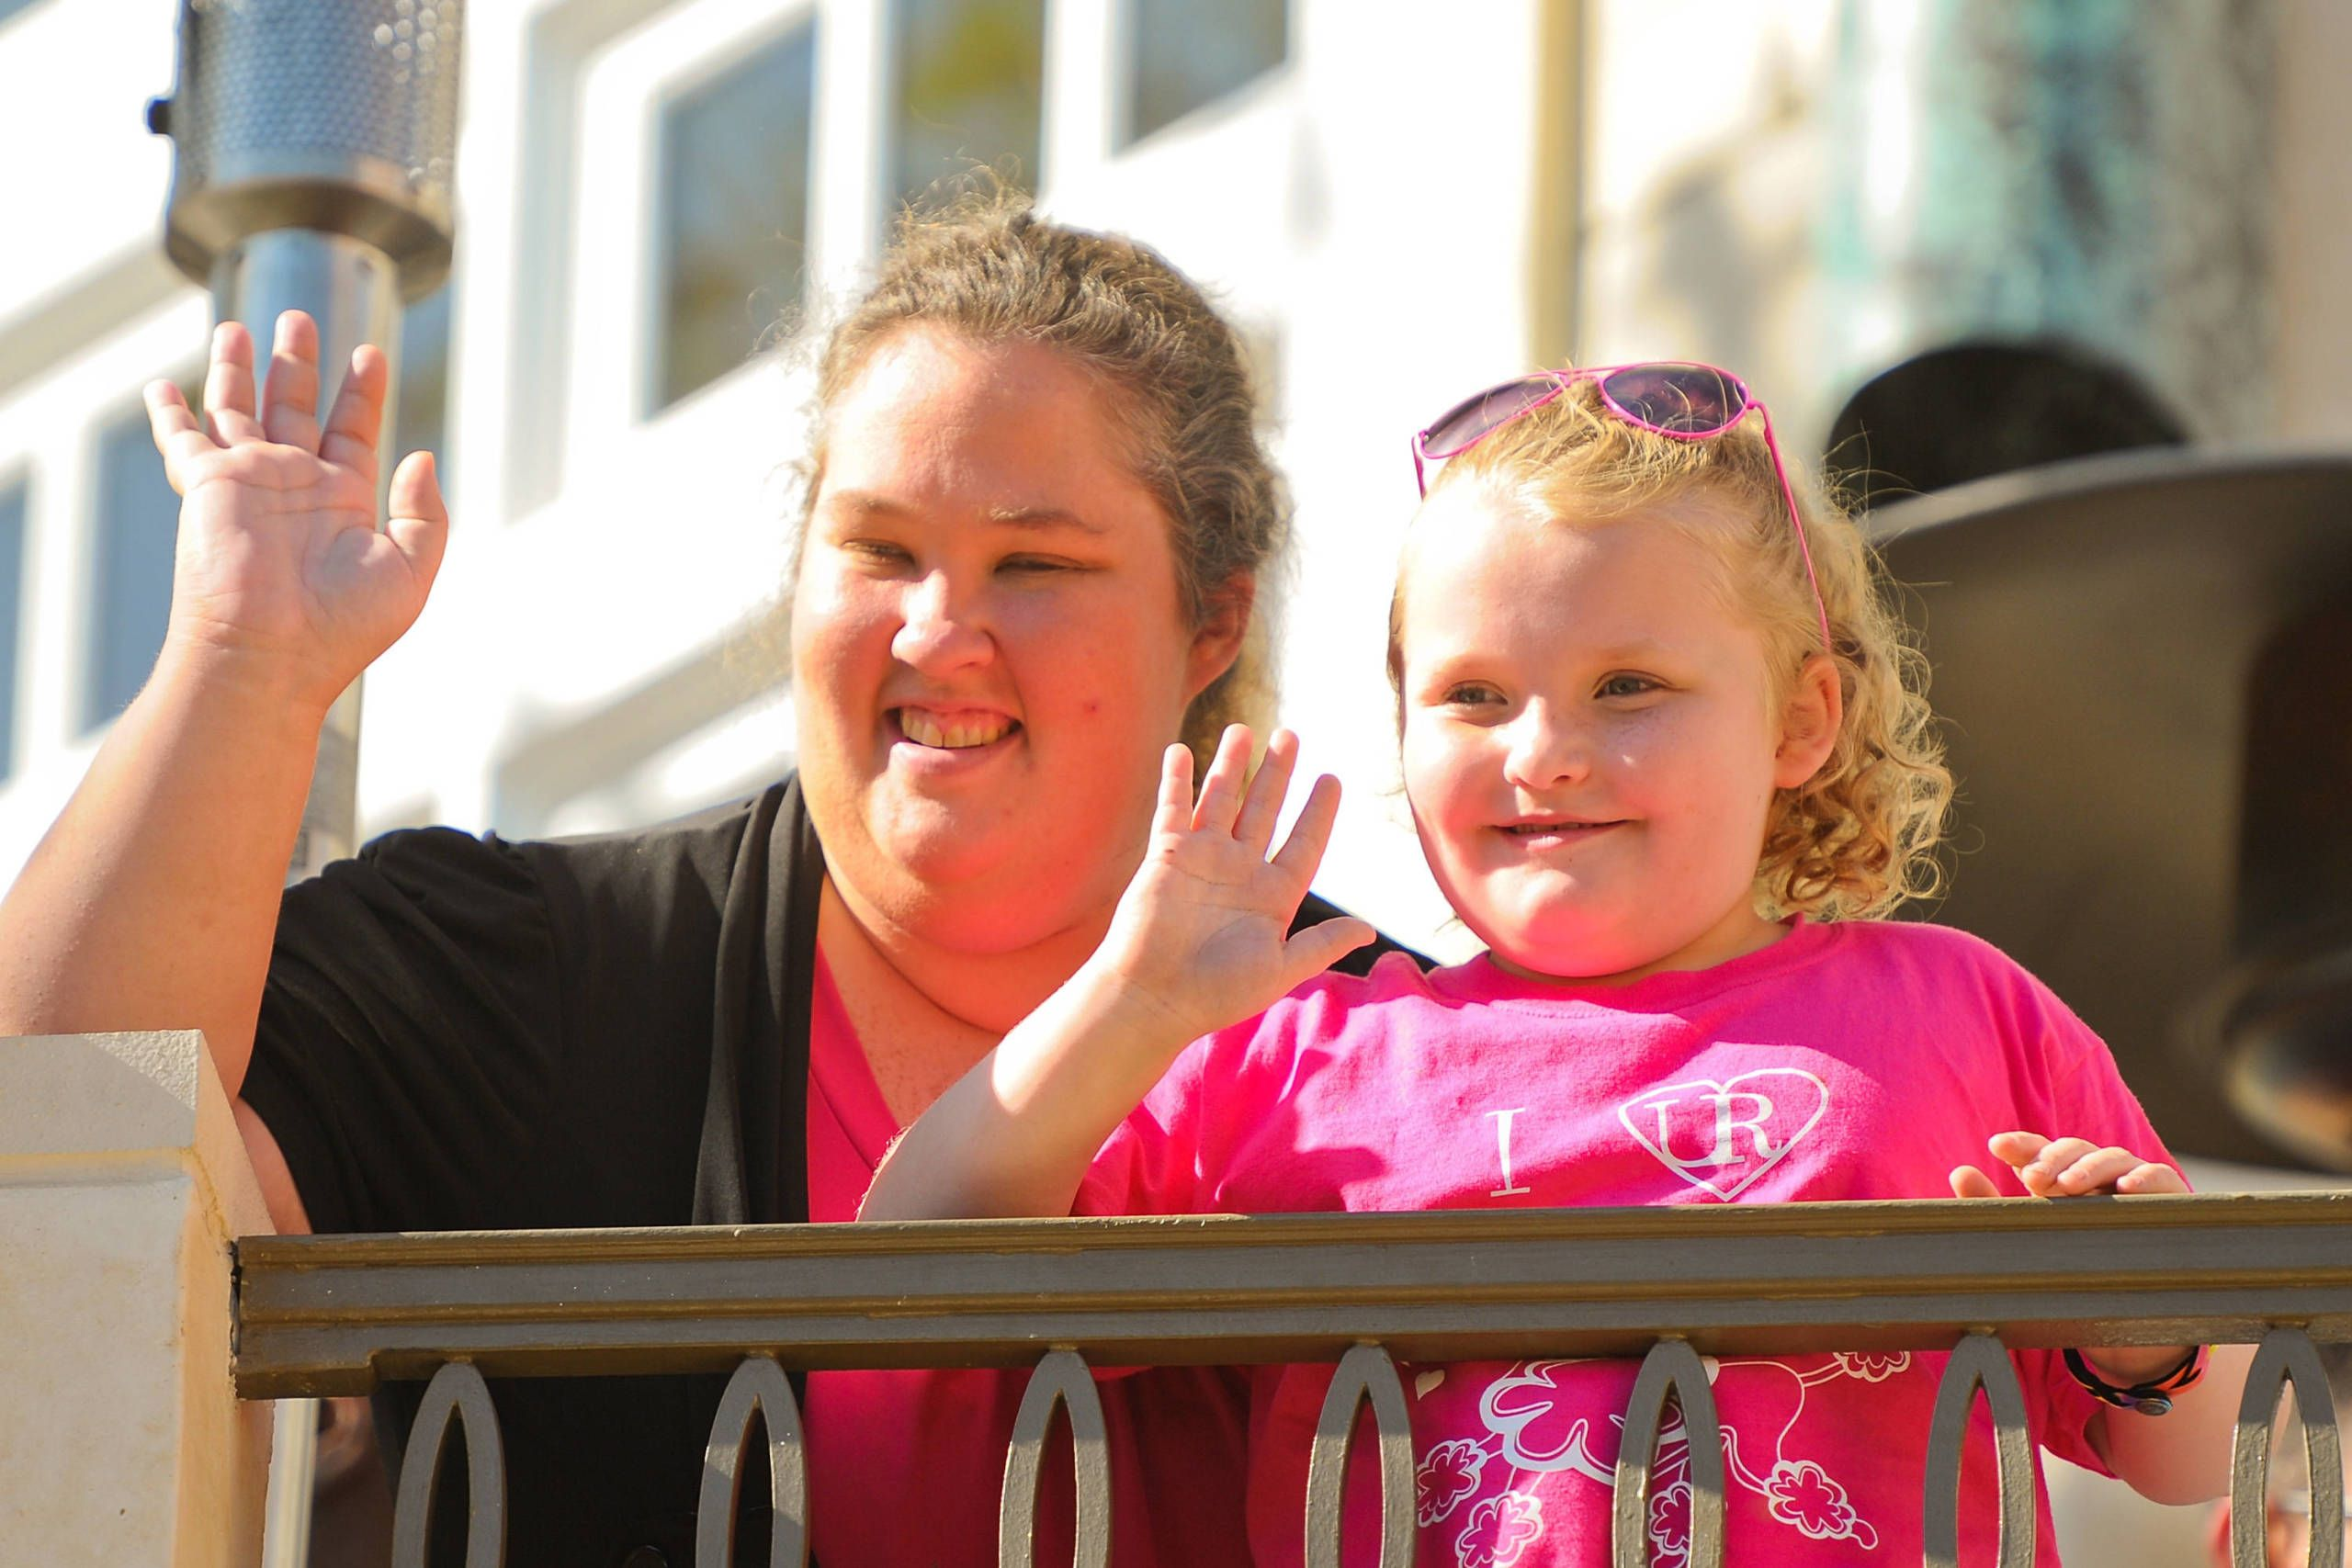 Is honey boo boo mother dating a sex offender